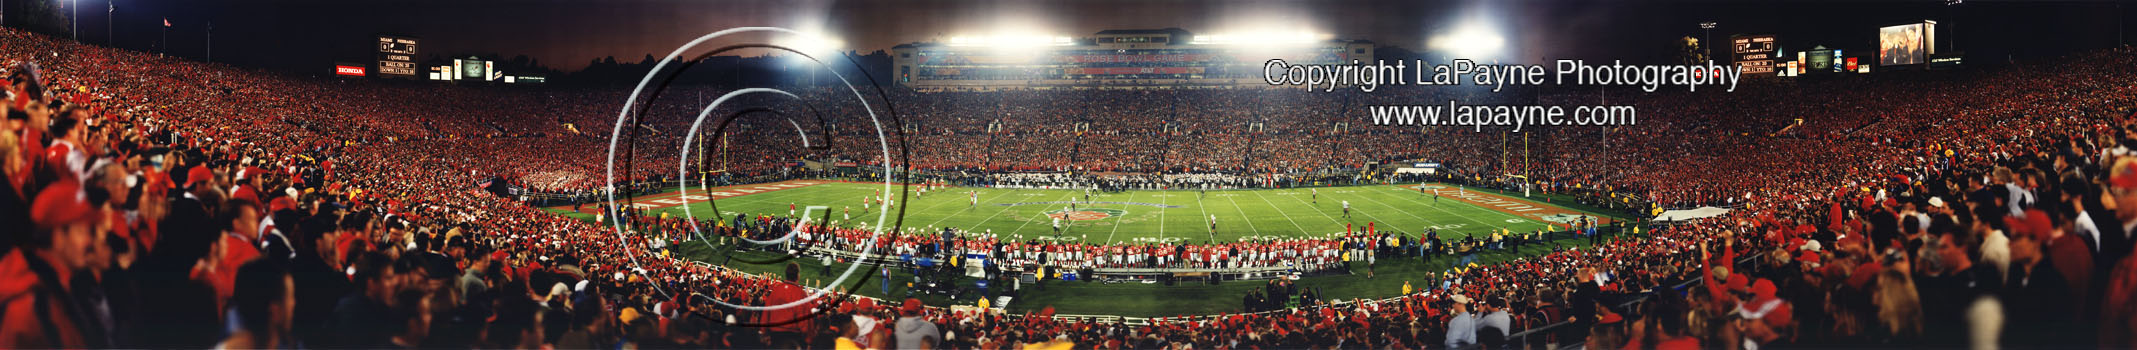 Rose Bowl 2002 - Kickoff Panorama